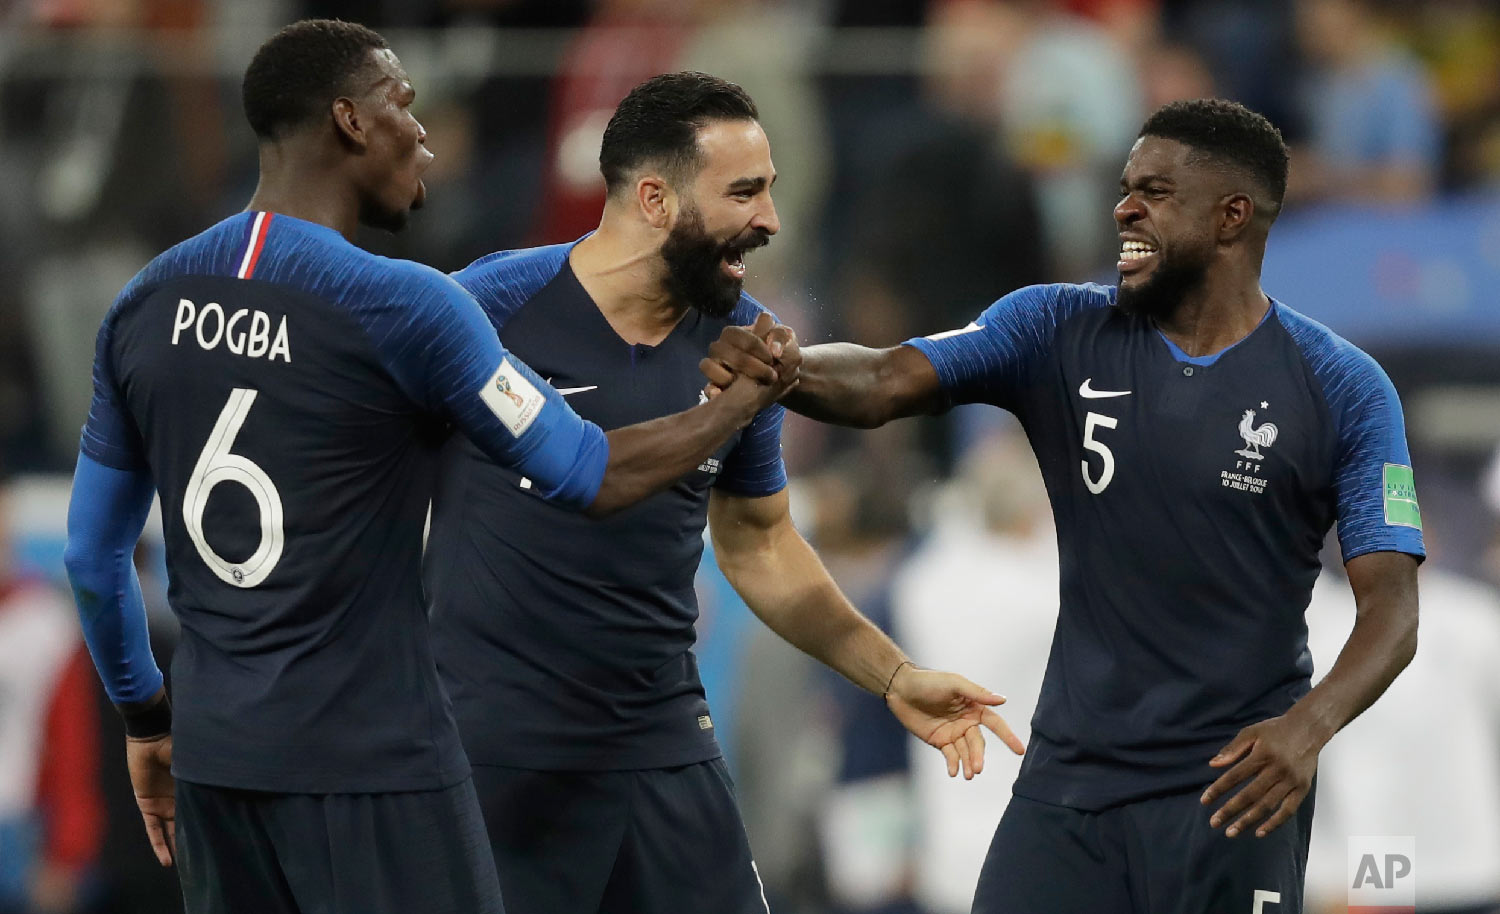 France's Samuel Umtiti, right celebrates with teammates France's Adil Rami, centre and France's Paul Pogba after defeating Belgium in their semifinal match between France and Belgium at the 2018 soccer World Cup in the St. Petersburg Stadium in, St. Petersburg, Russia, Tuesday, July 10, 2018. France won the game 1-0. (AP Photo/Natacha Pisarenko)